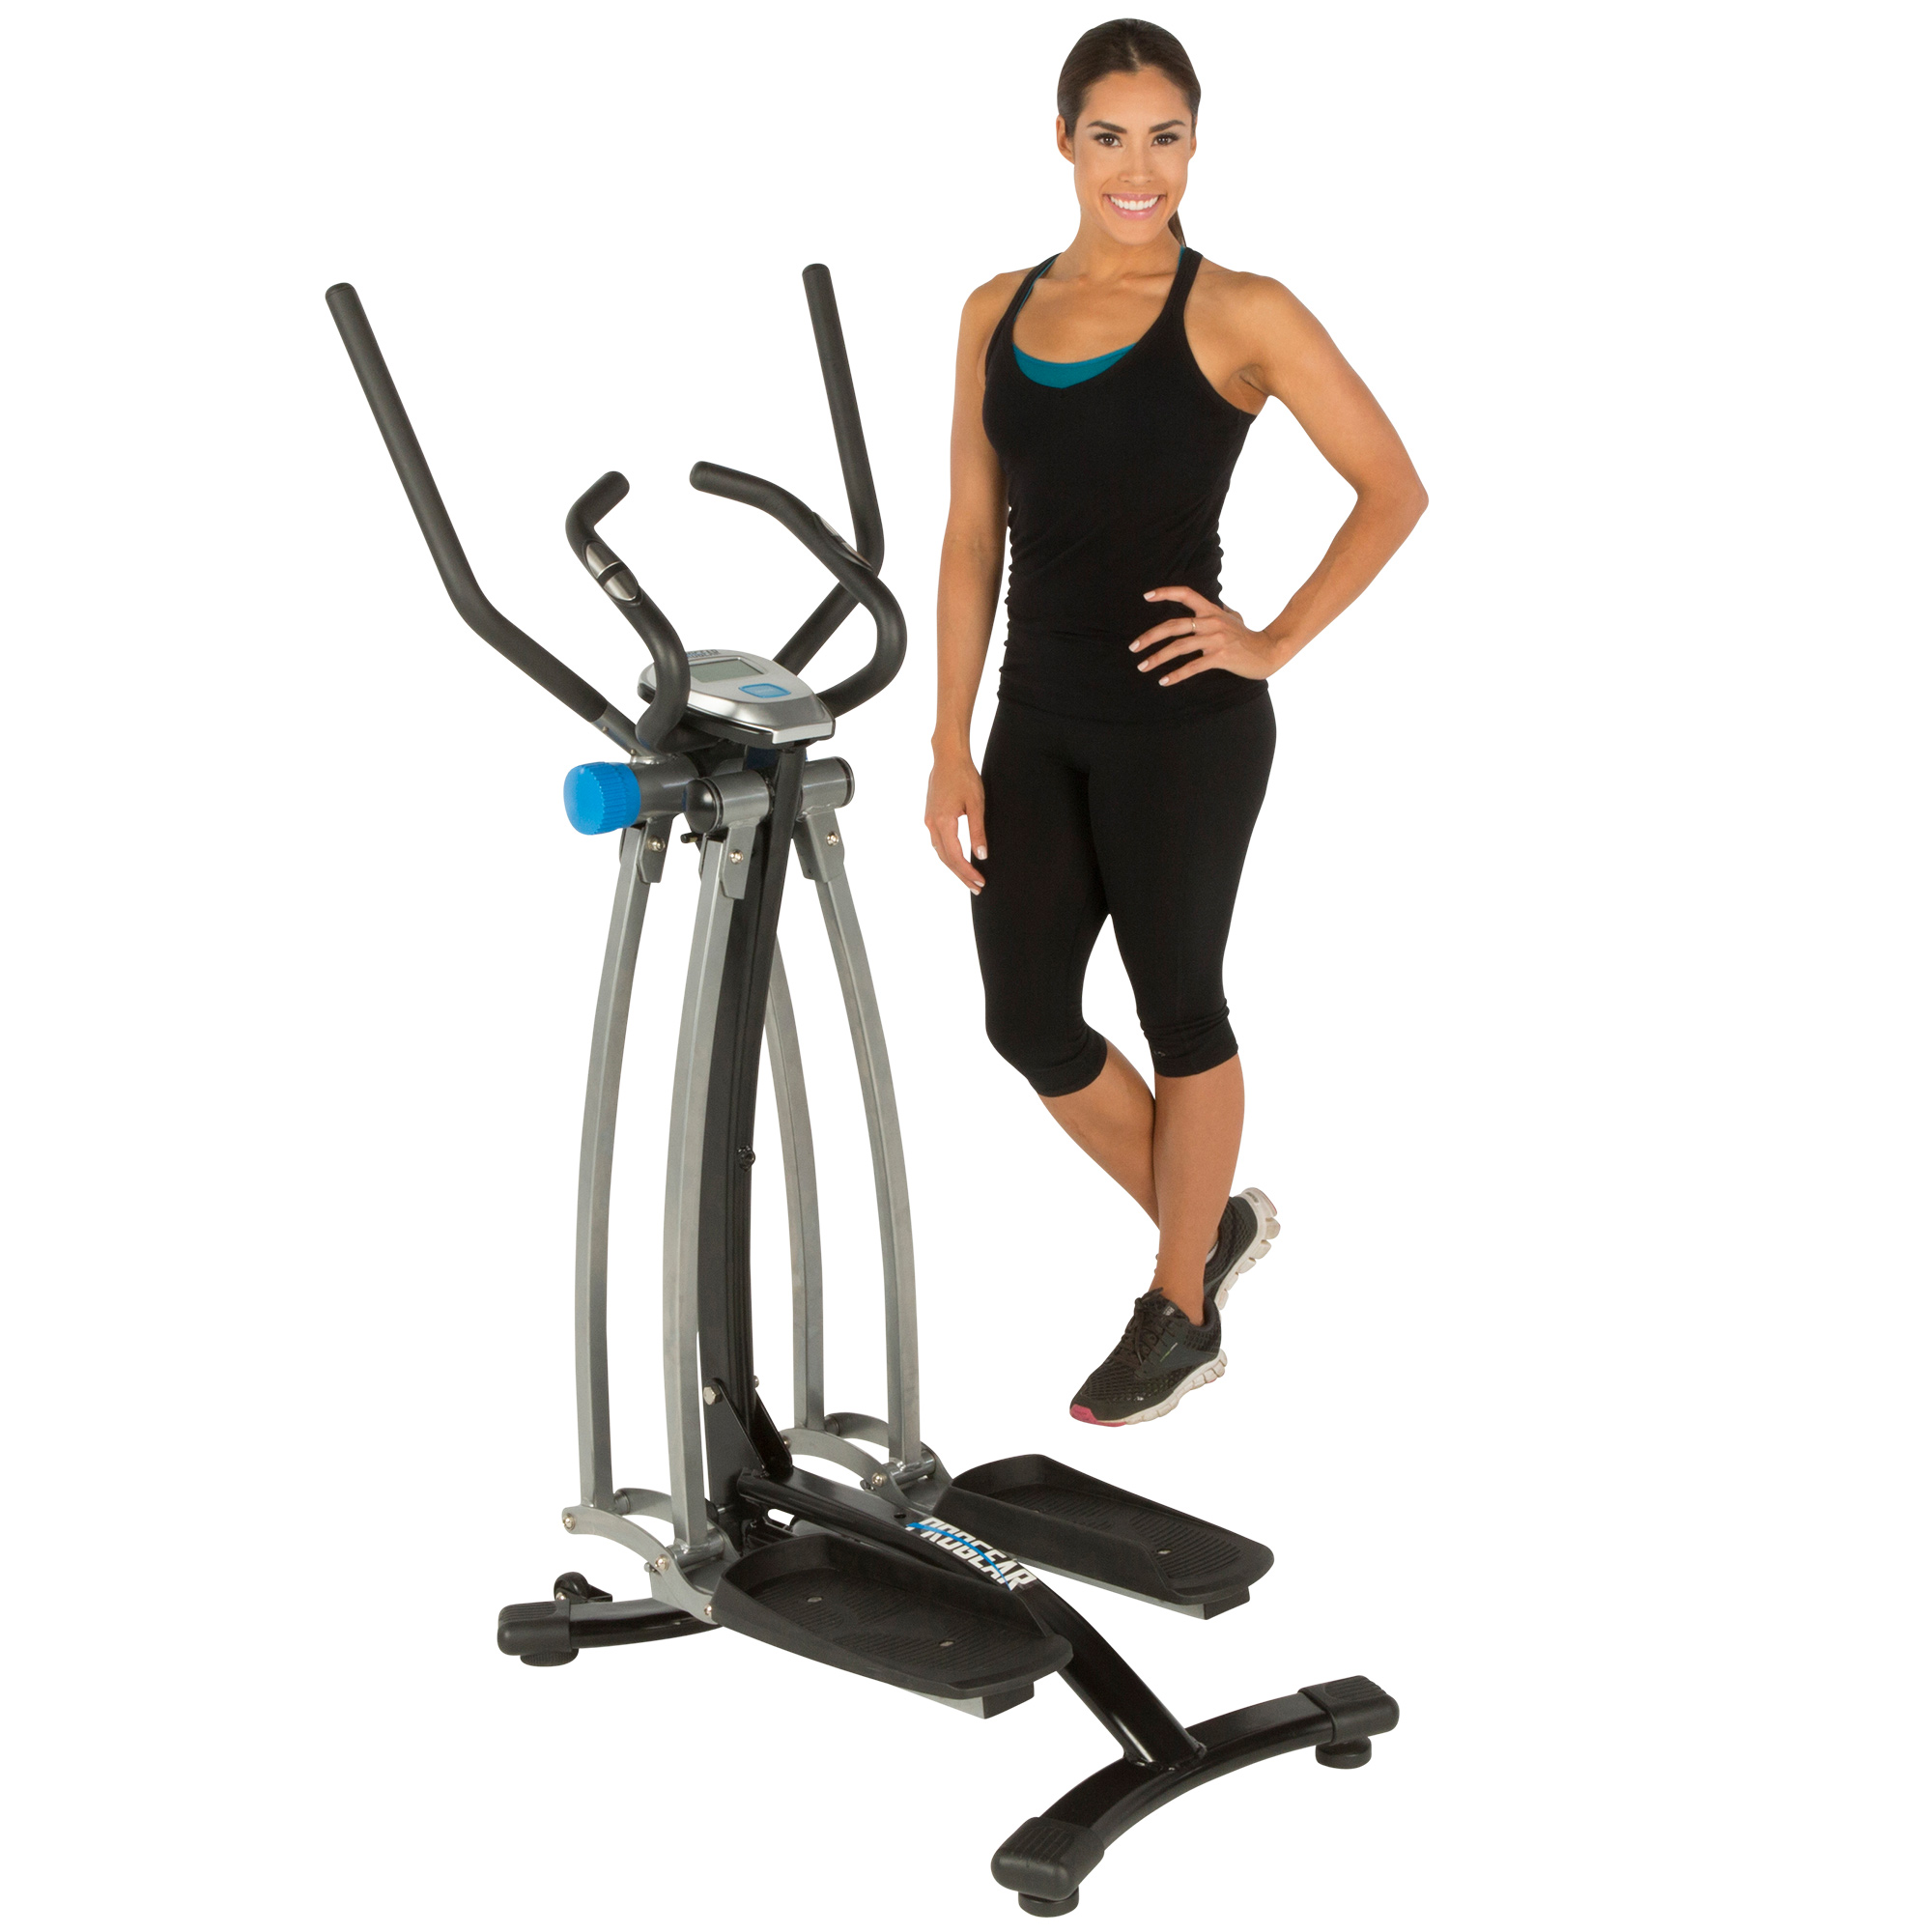 "PROGEAR DUAL-ACTION 360 MULTIDIRECTION 36""-STRIDE AIR WALKER LS w/ HEART PULSE SENSORS PartNumber: 00644599000P"